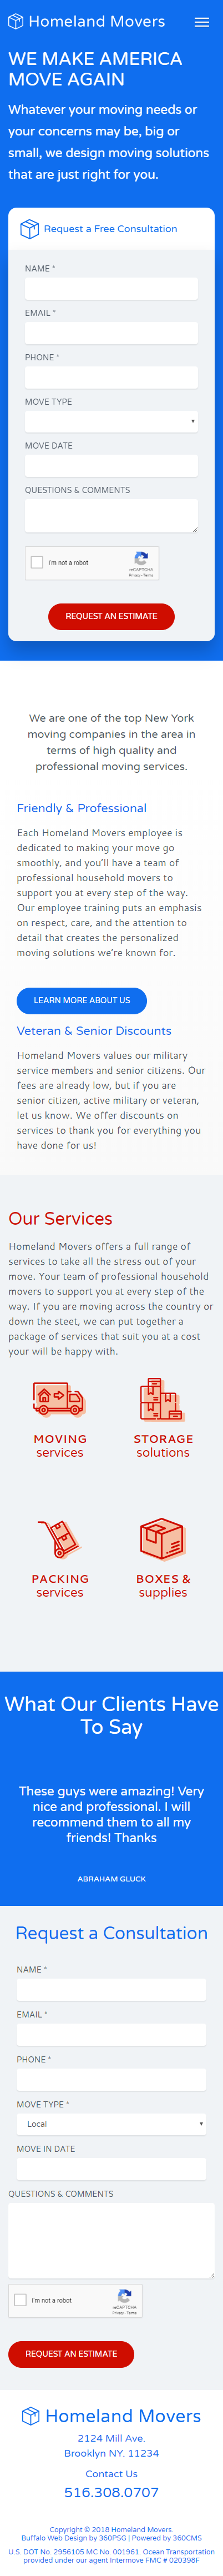 Homeland Movers Mobile